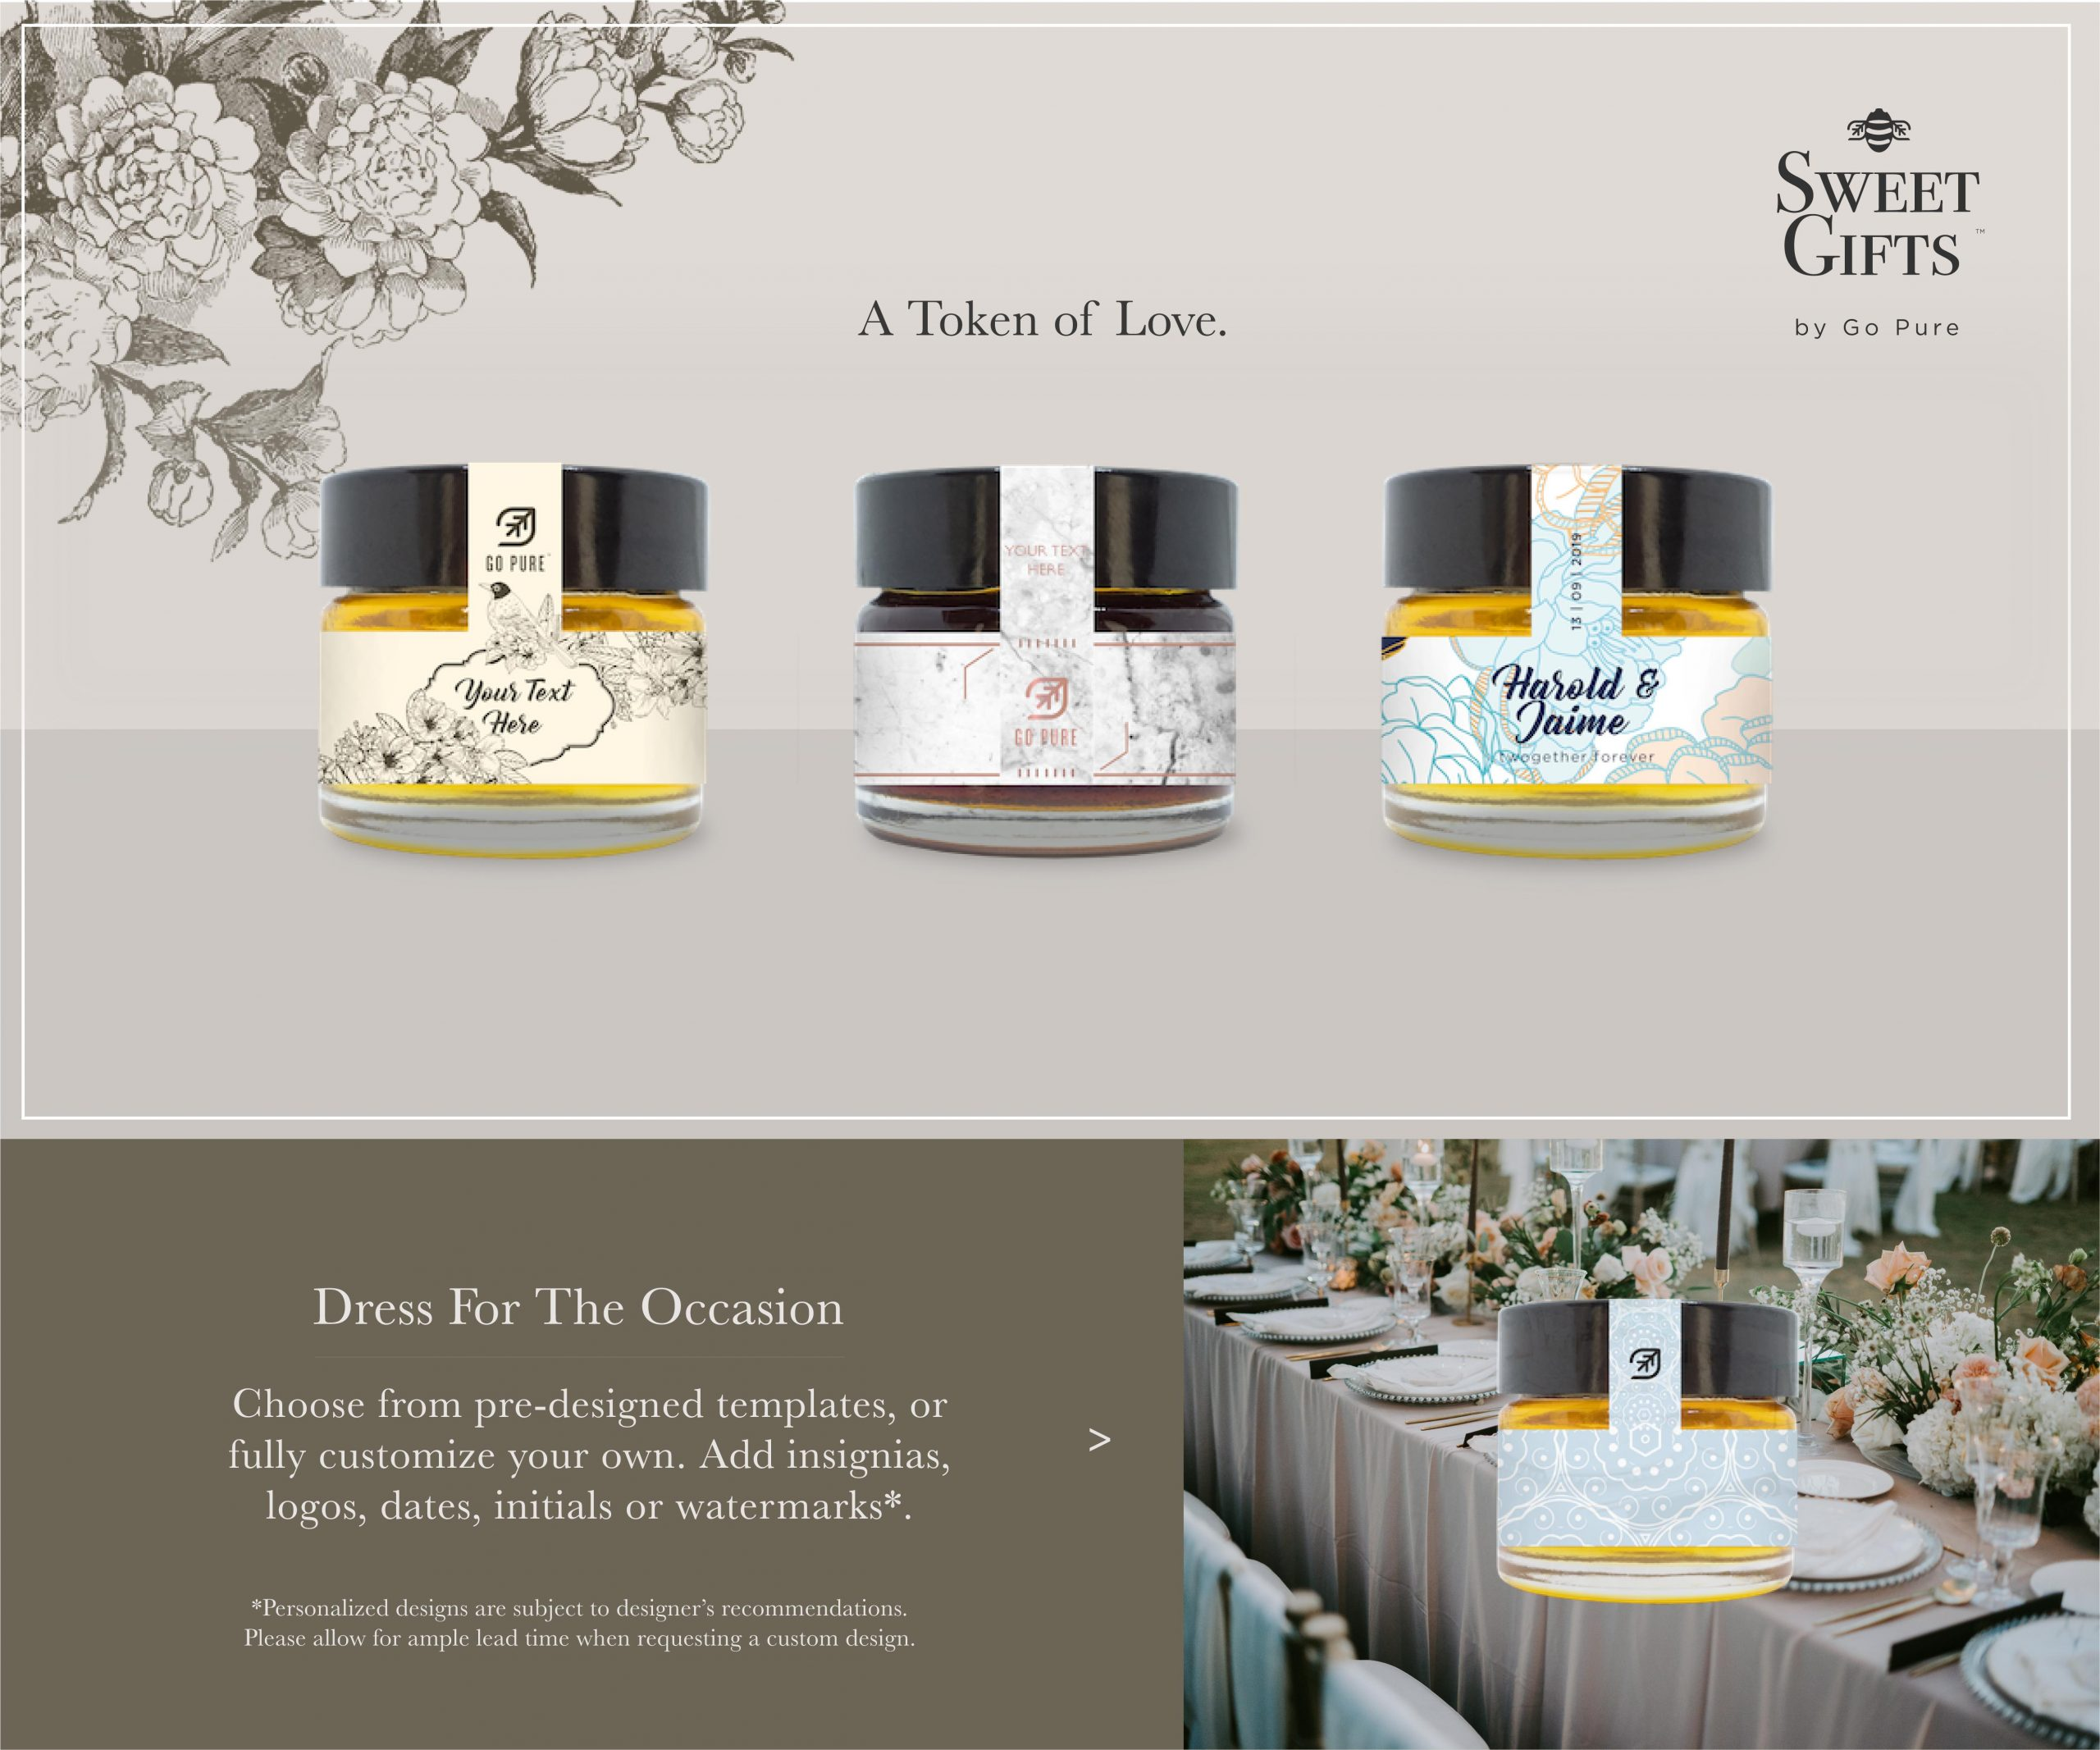 A Token of Love: Sweet Gifts by Go Pure - mini honey favours